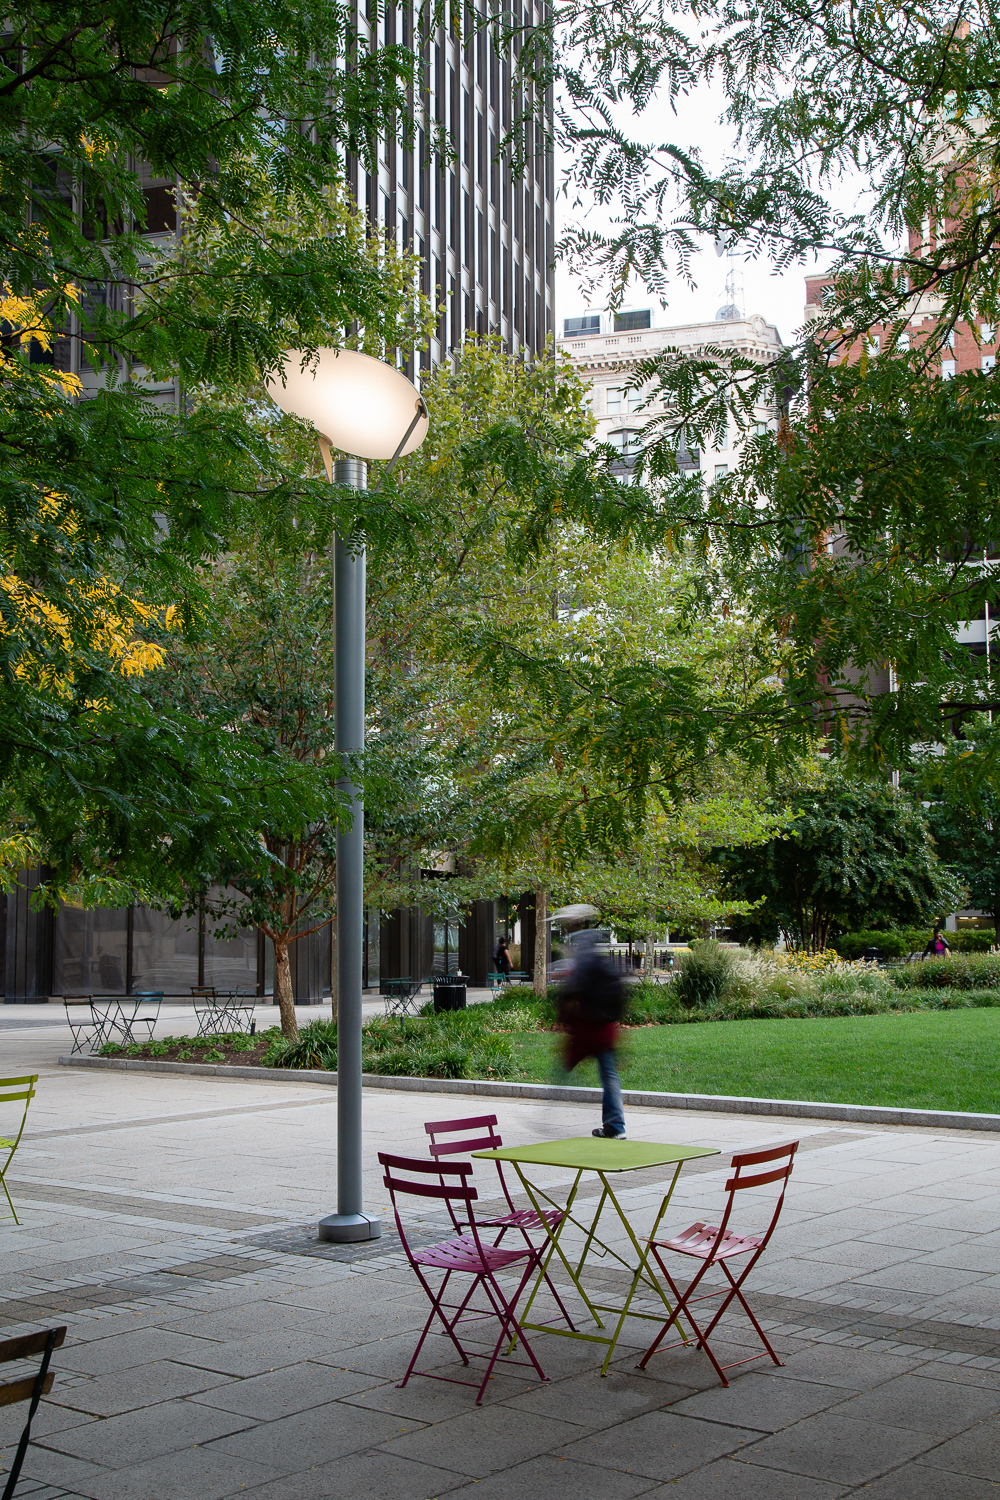 Urban park landscape design photography by Ella Bessette. Architectural photographers for Baltimore MD metro area.